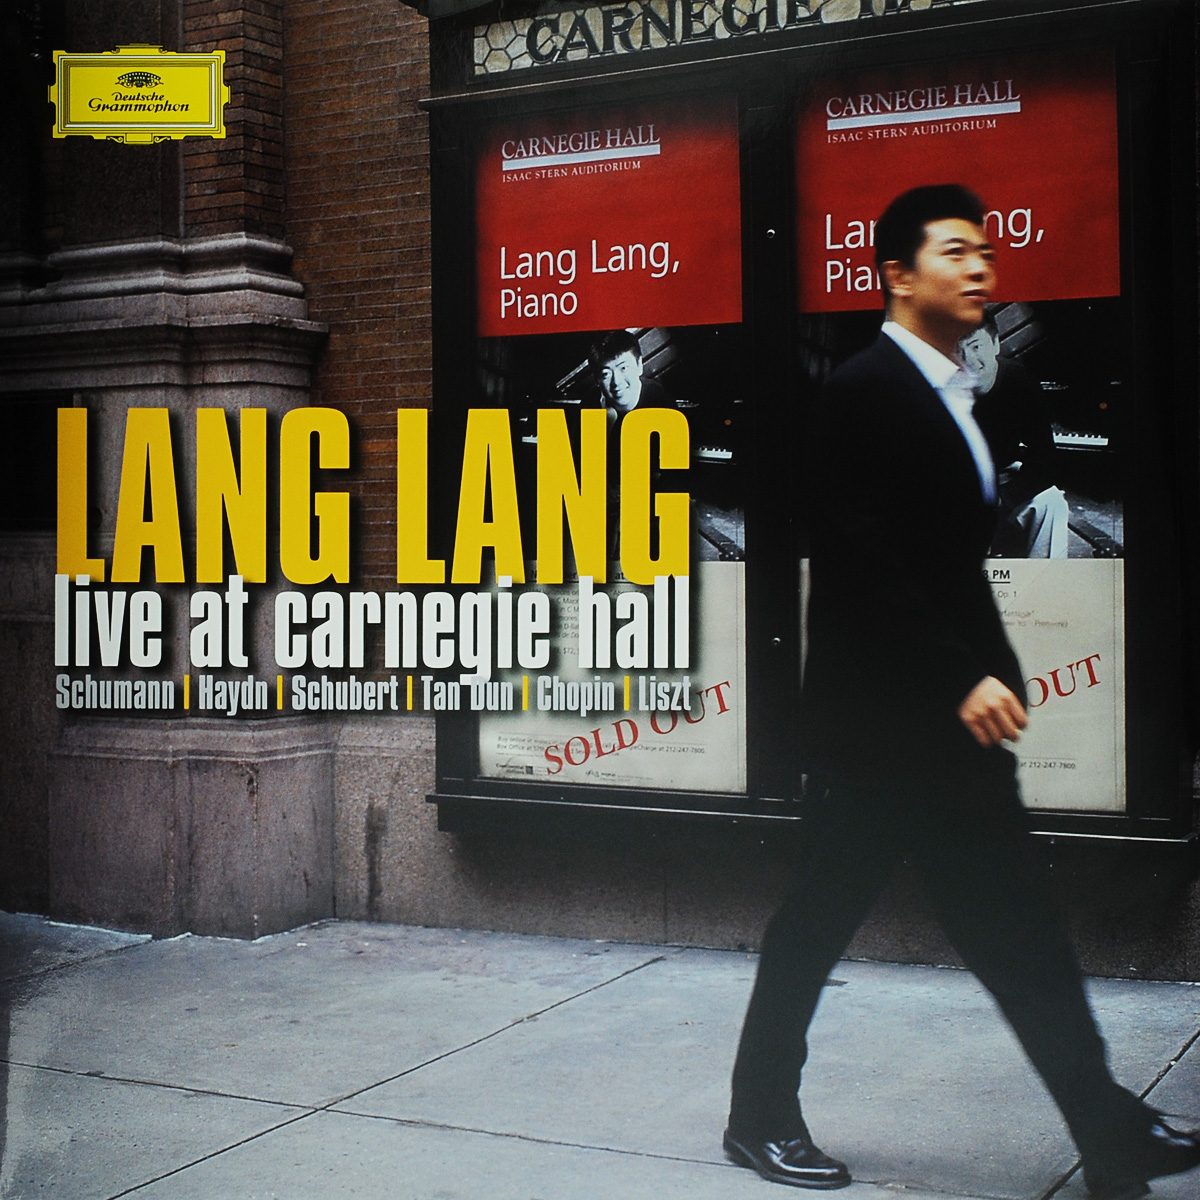 Ланг Ланг Lang Lang. Live At Carnegie Hall (2 LP) райан адамс ryan adams ten songs from live at carnegie hall lp